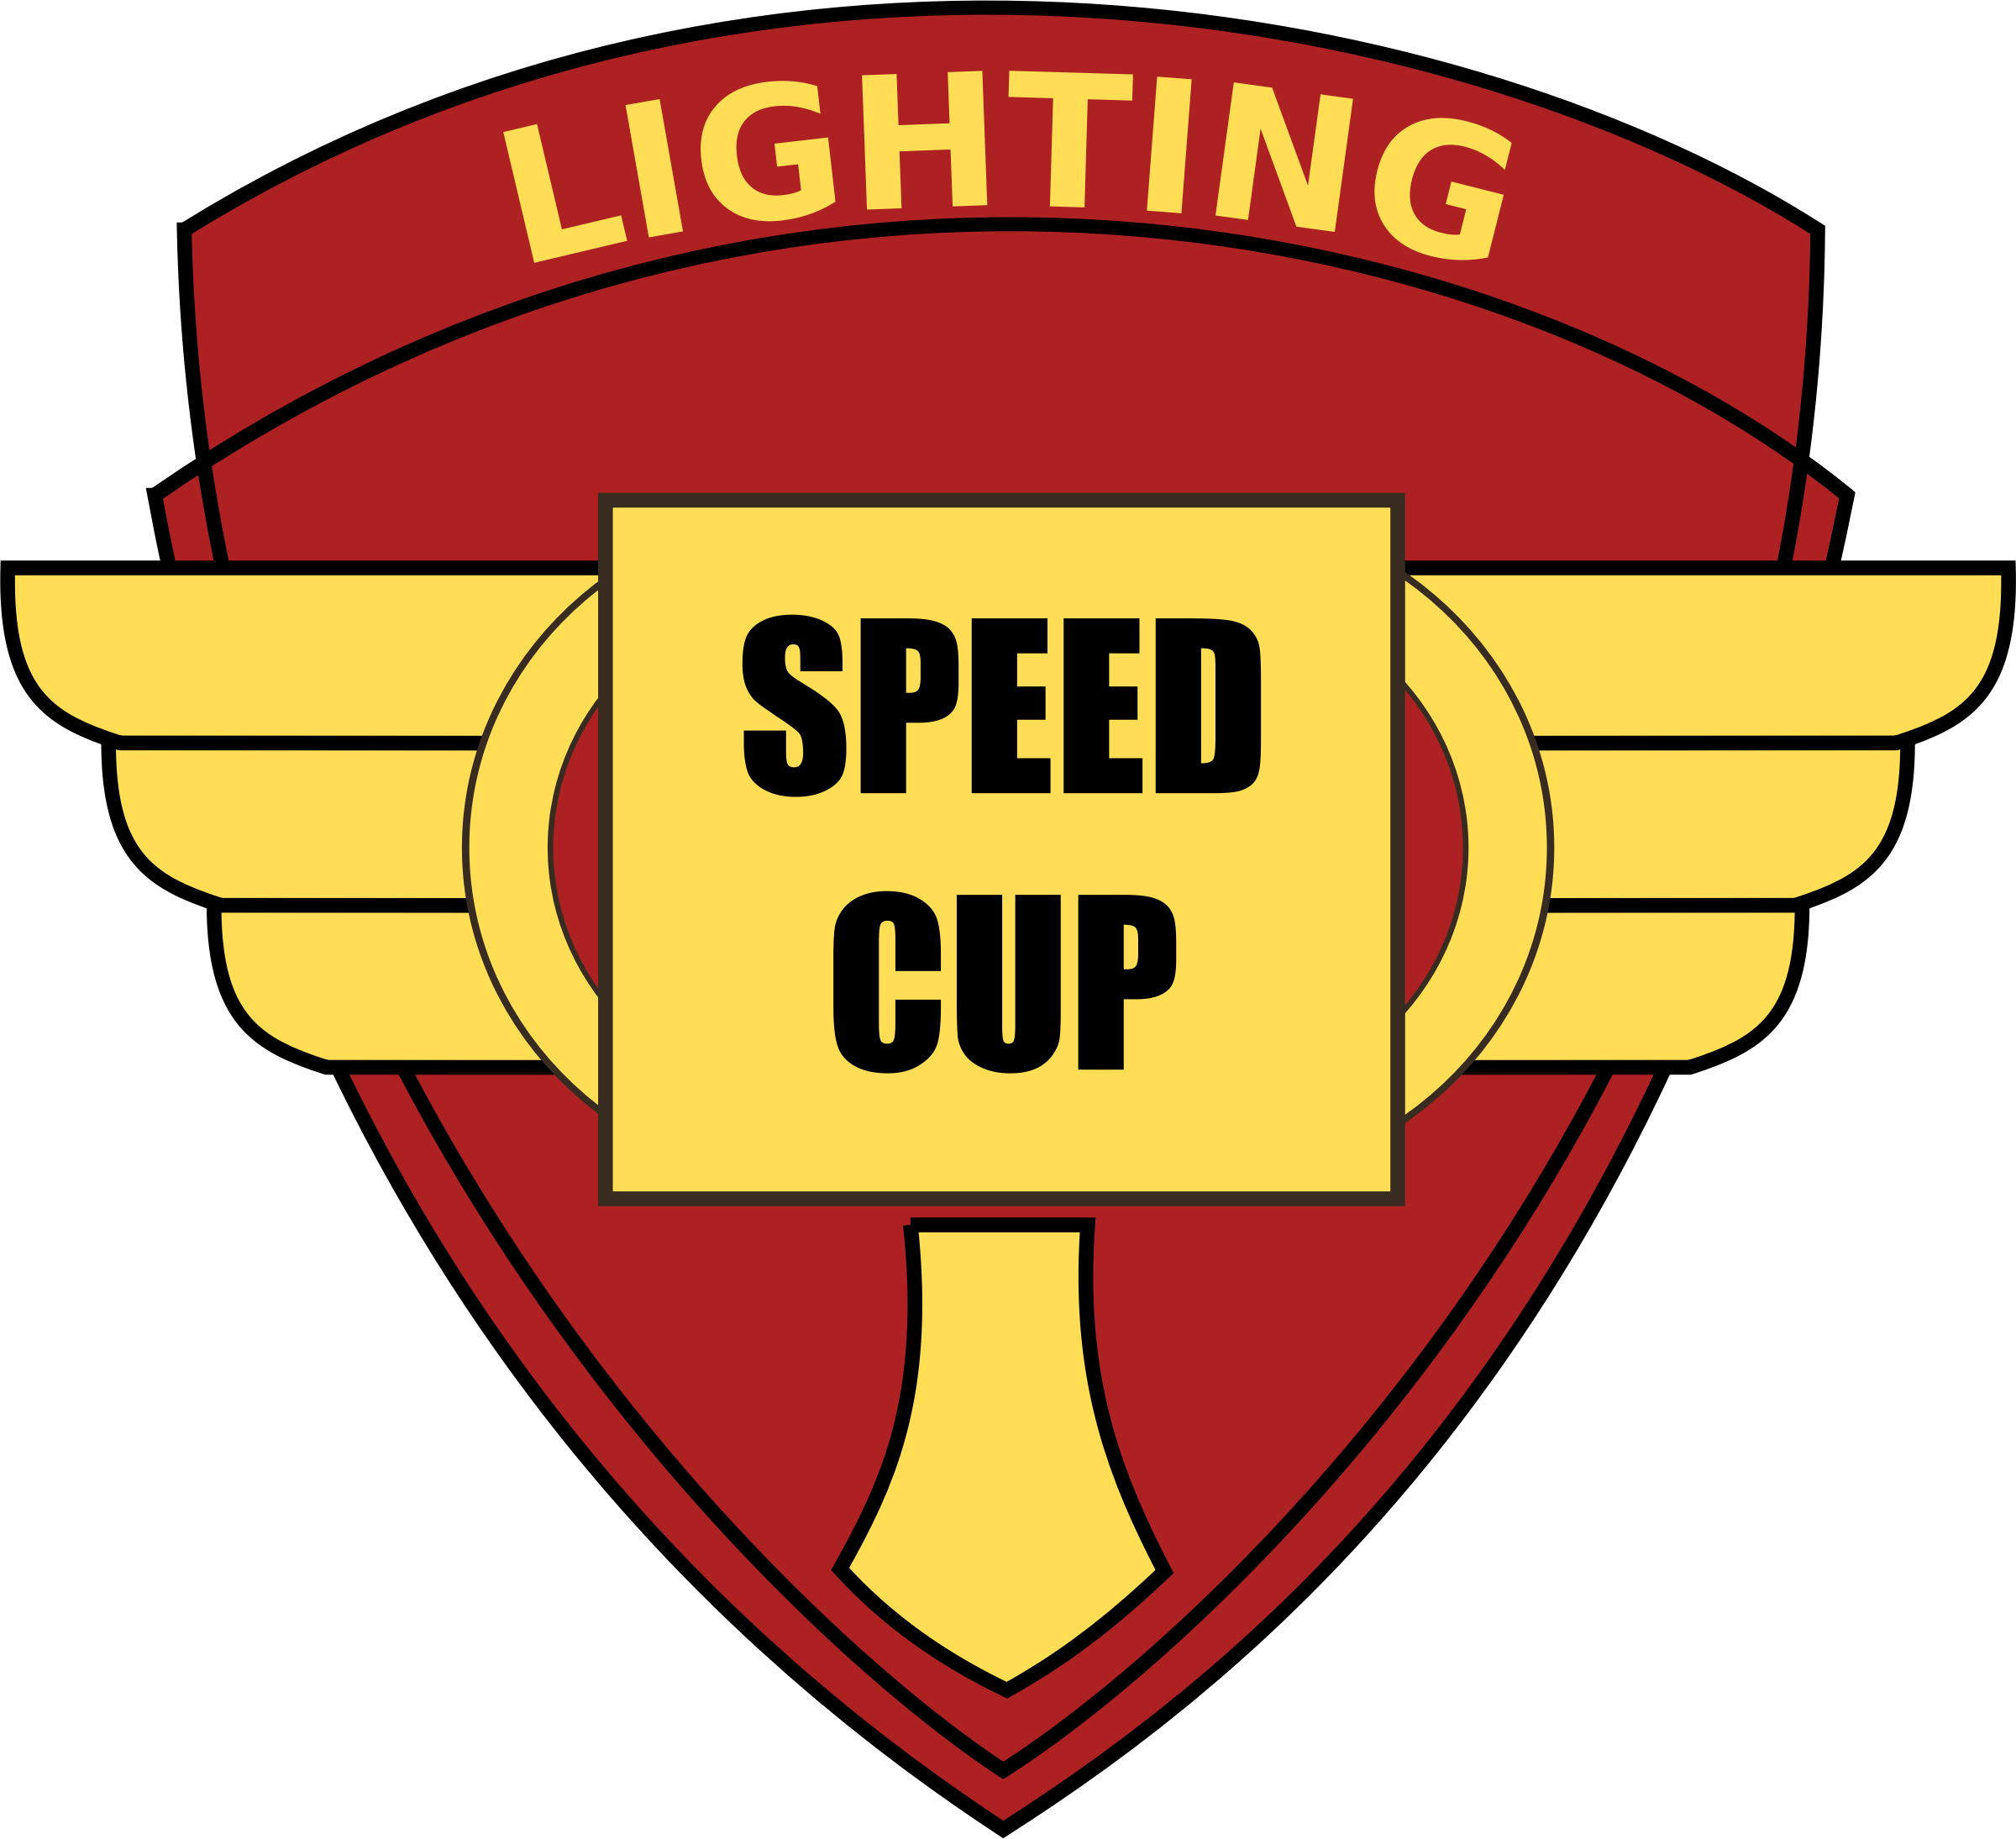 speed cup by gramic